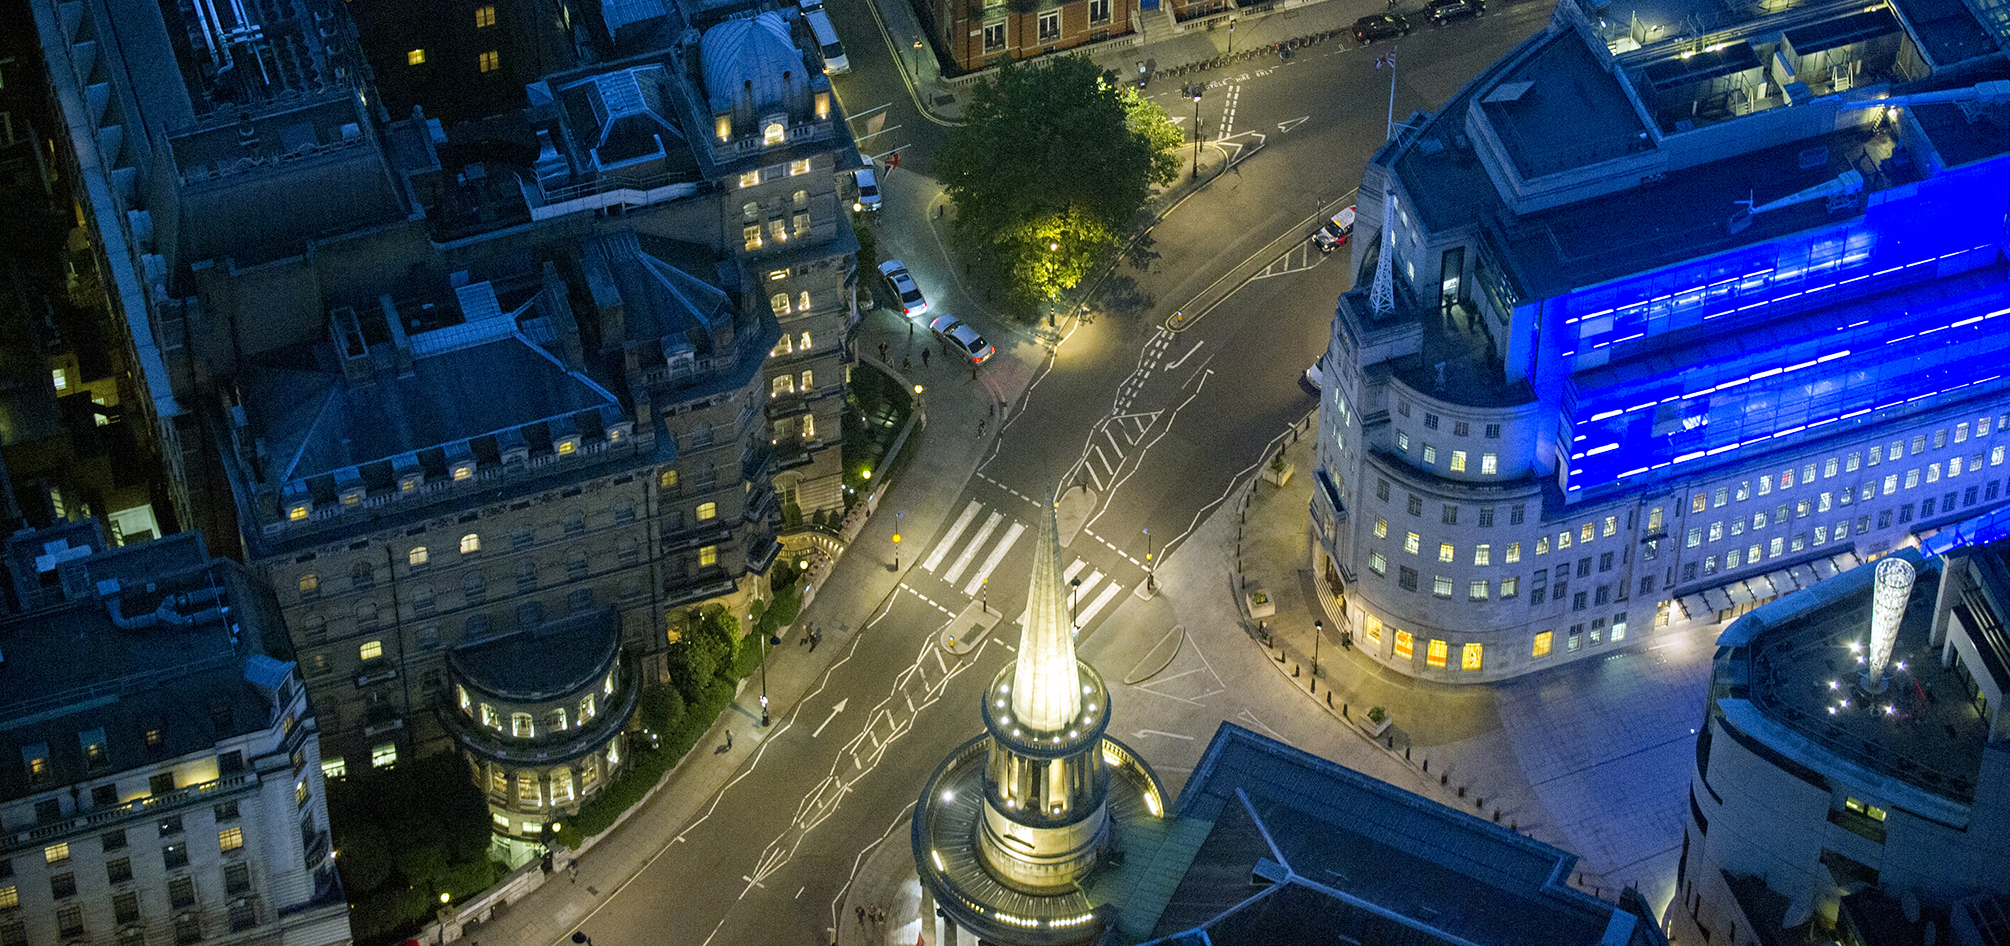 Evenings on Regent Street, the brightly lit streets of London invite you to admire the city's beautiful architecture.